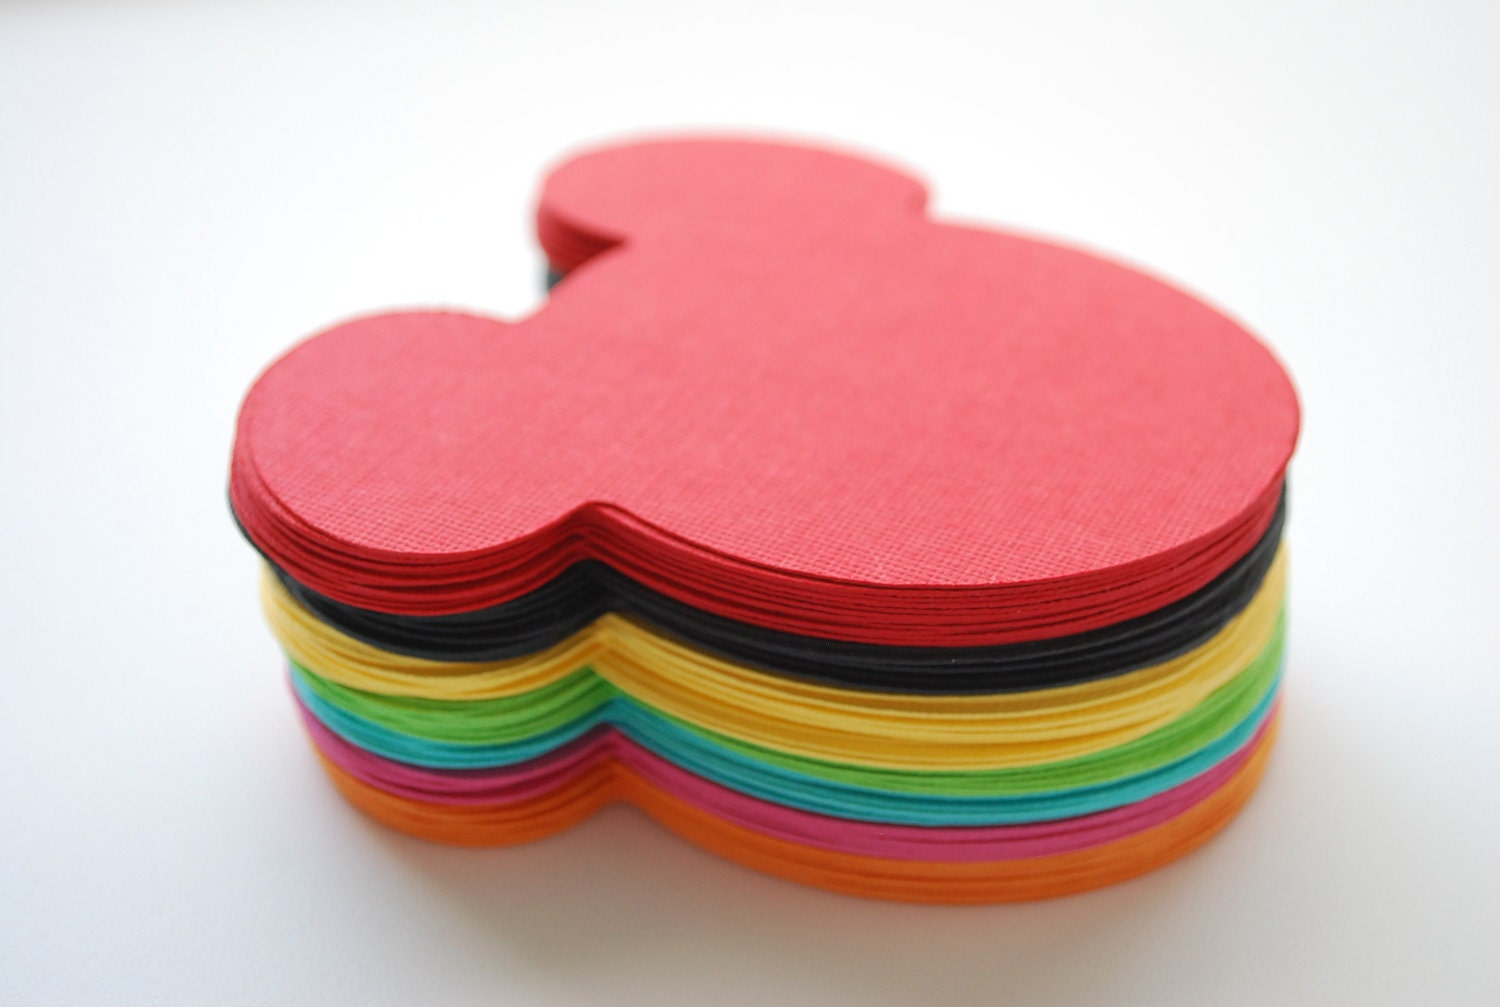 21 Mickey Mouse die cut (4 x3.75 inches) in Rainbow colors (7 Colors) ,CIJ - christmas in july